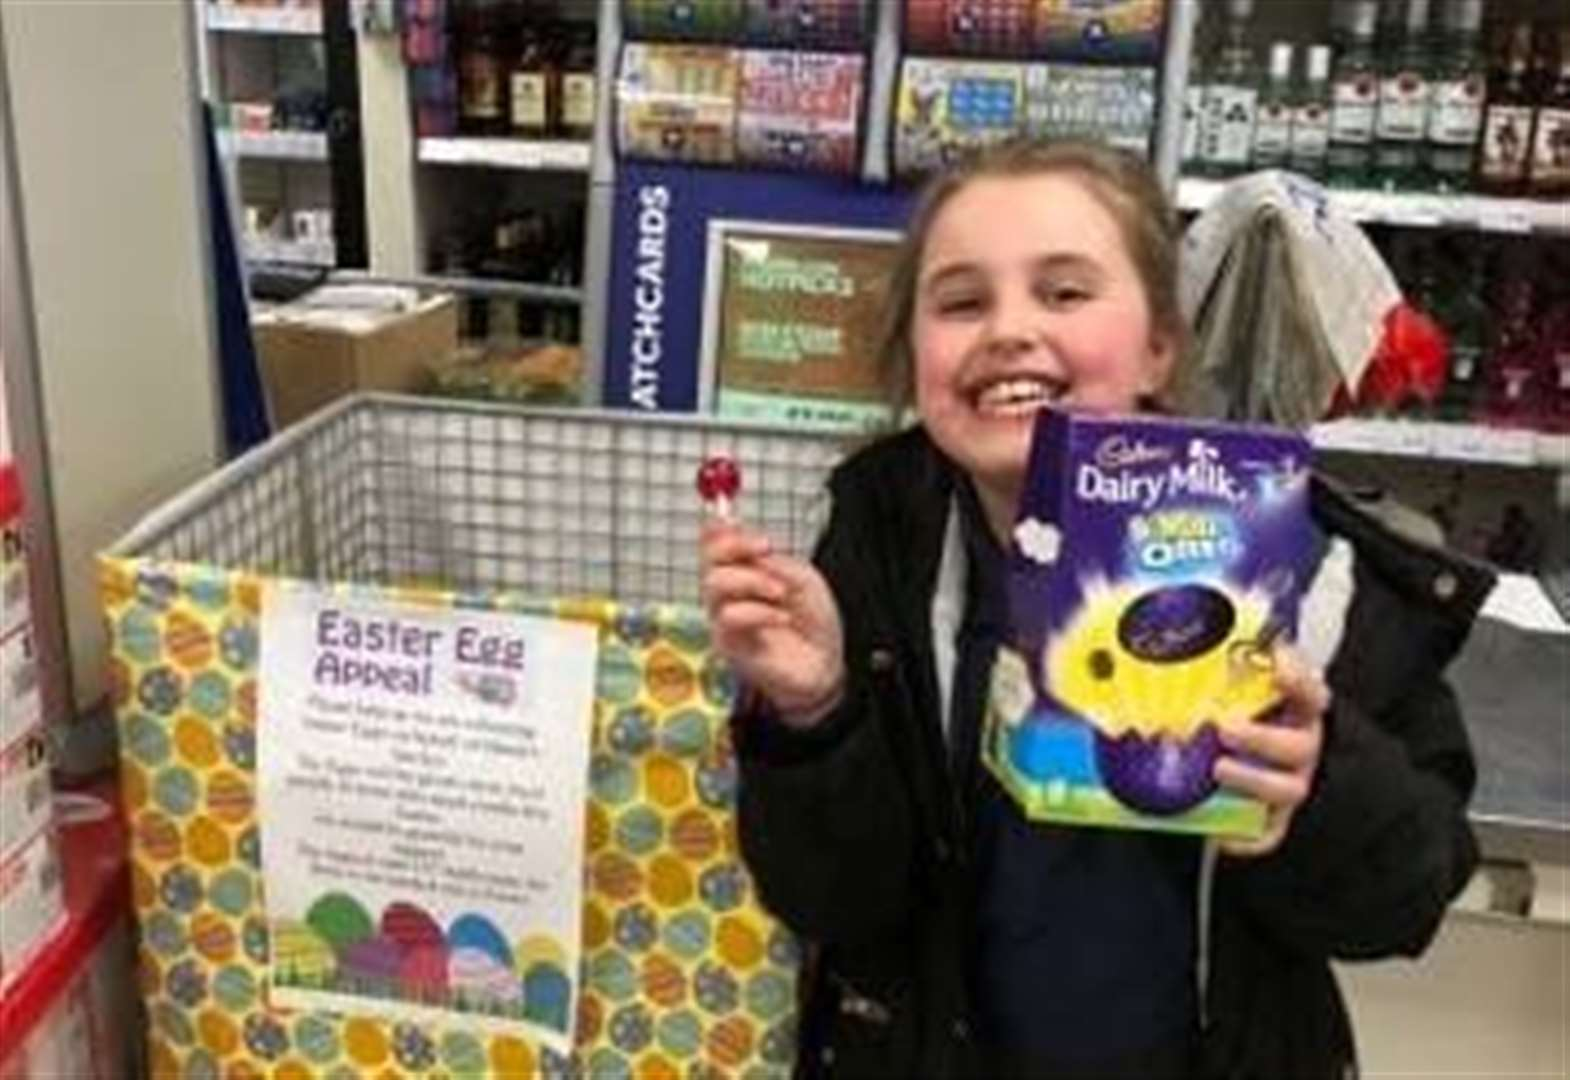 Grantham mums appeal for Easter egg donations in tribute to sons